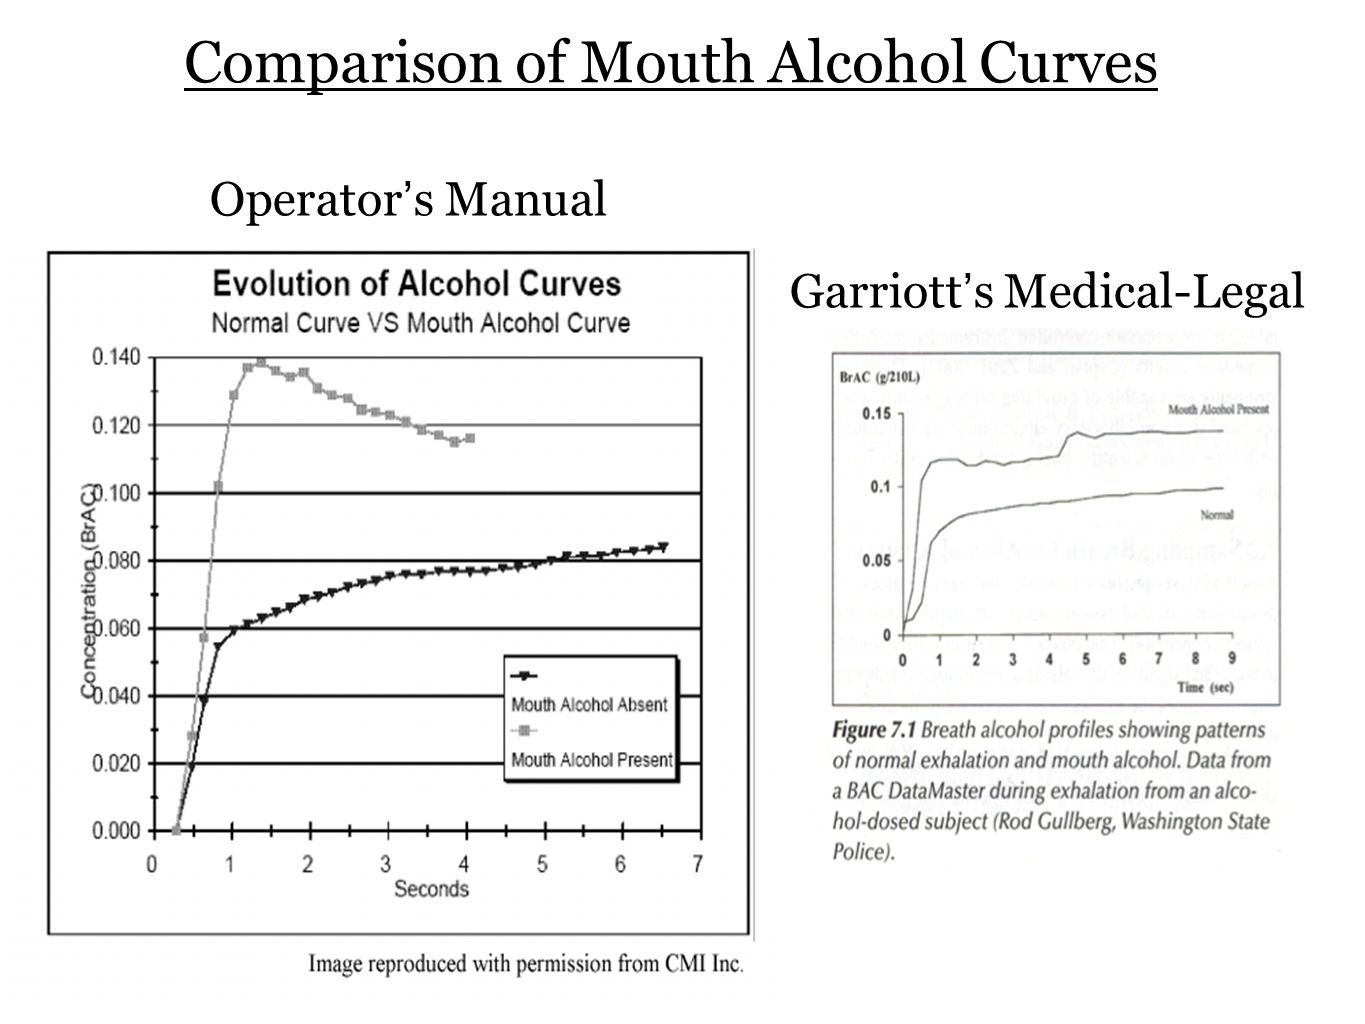 Comparison of Mouth Alcohol Curves